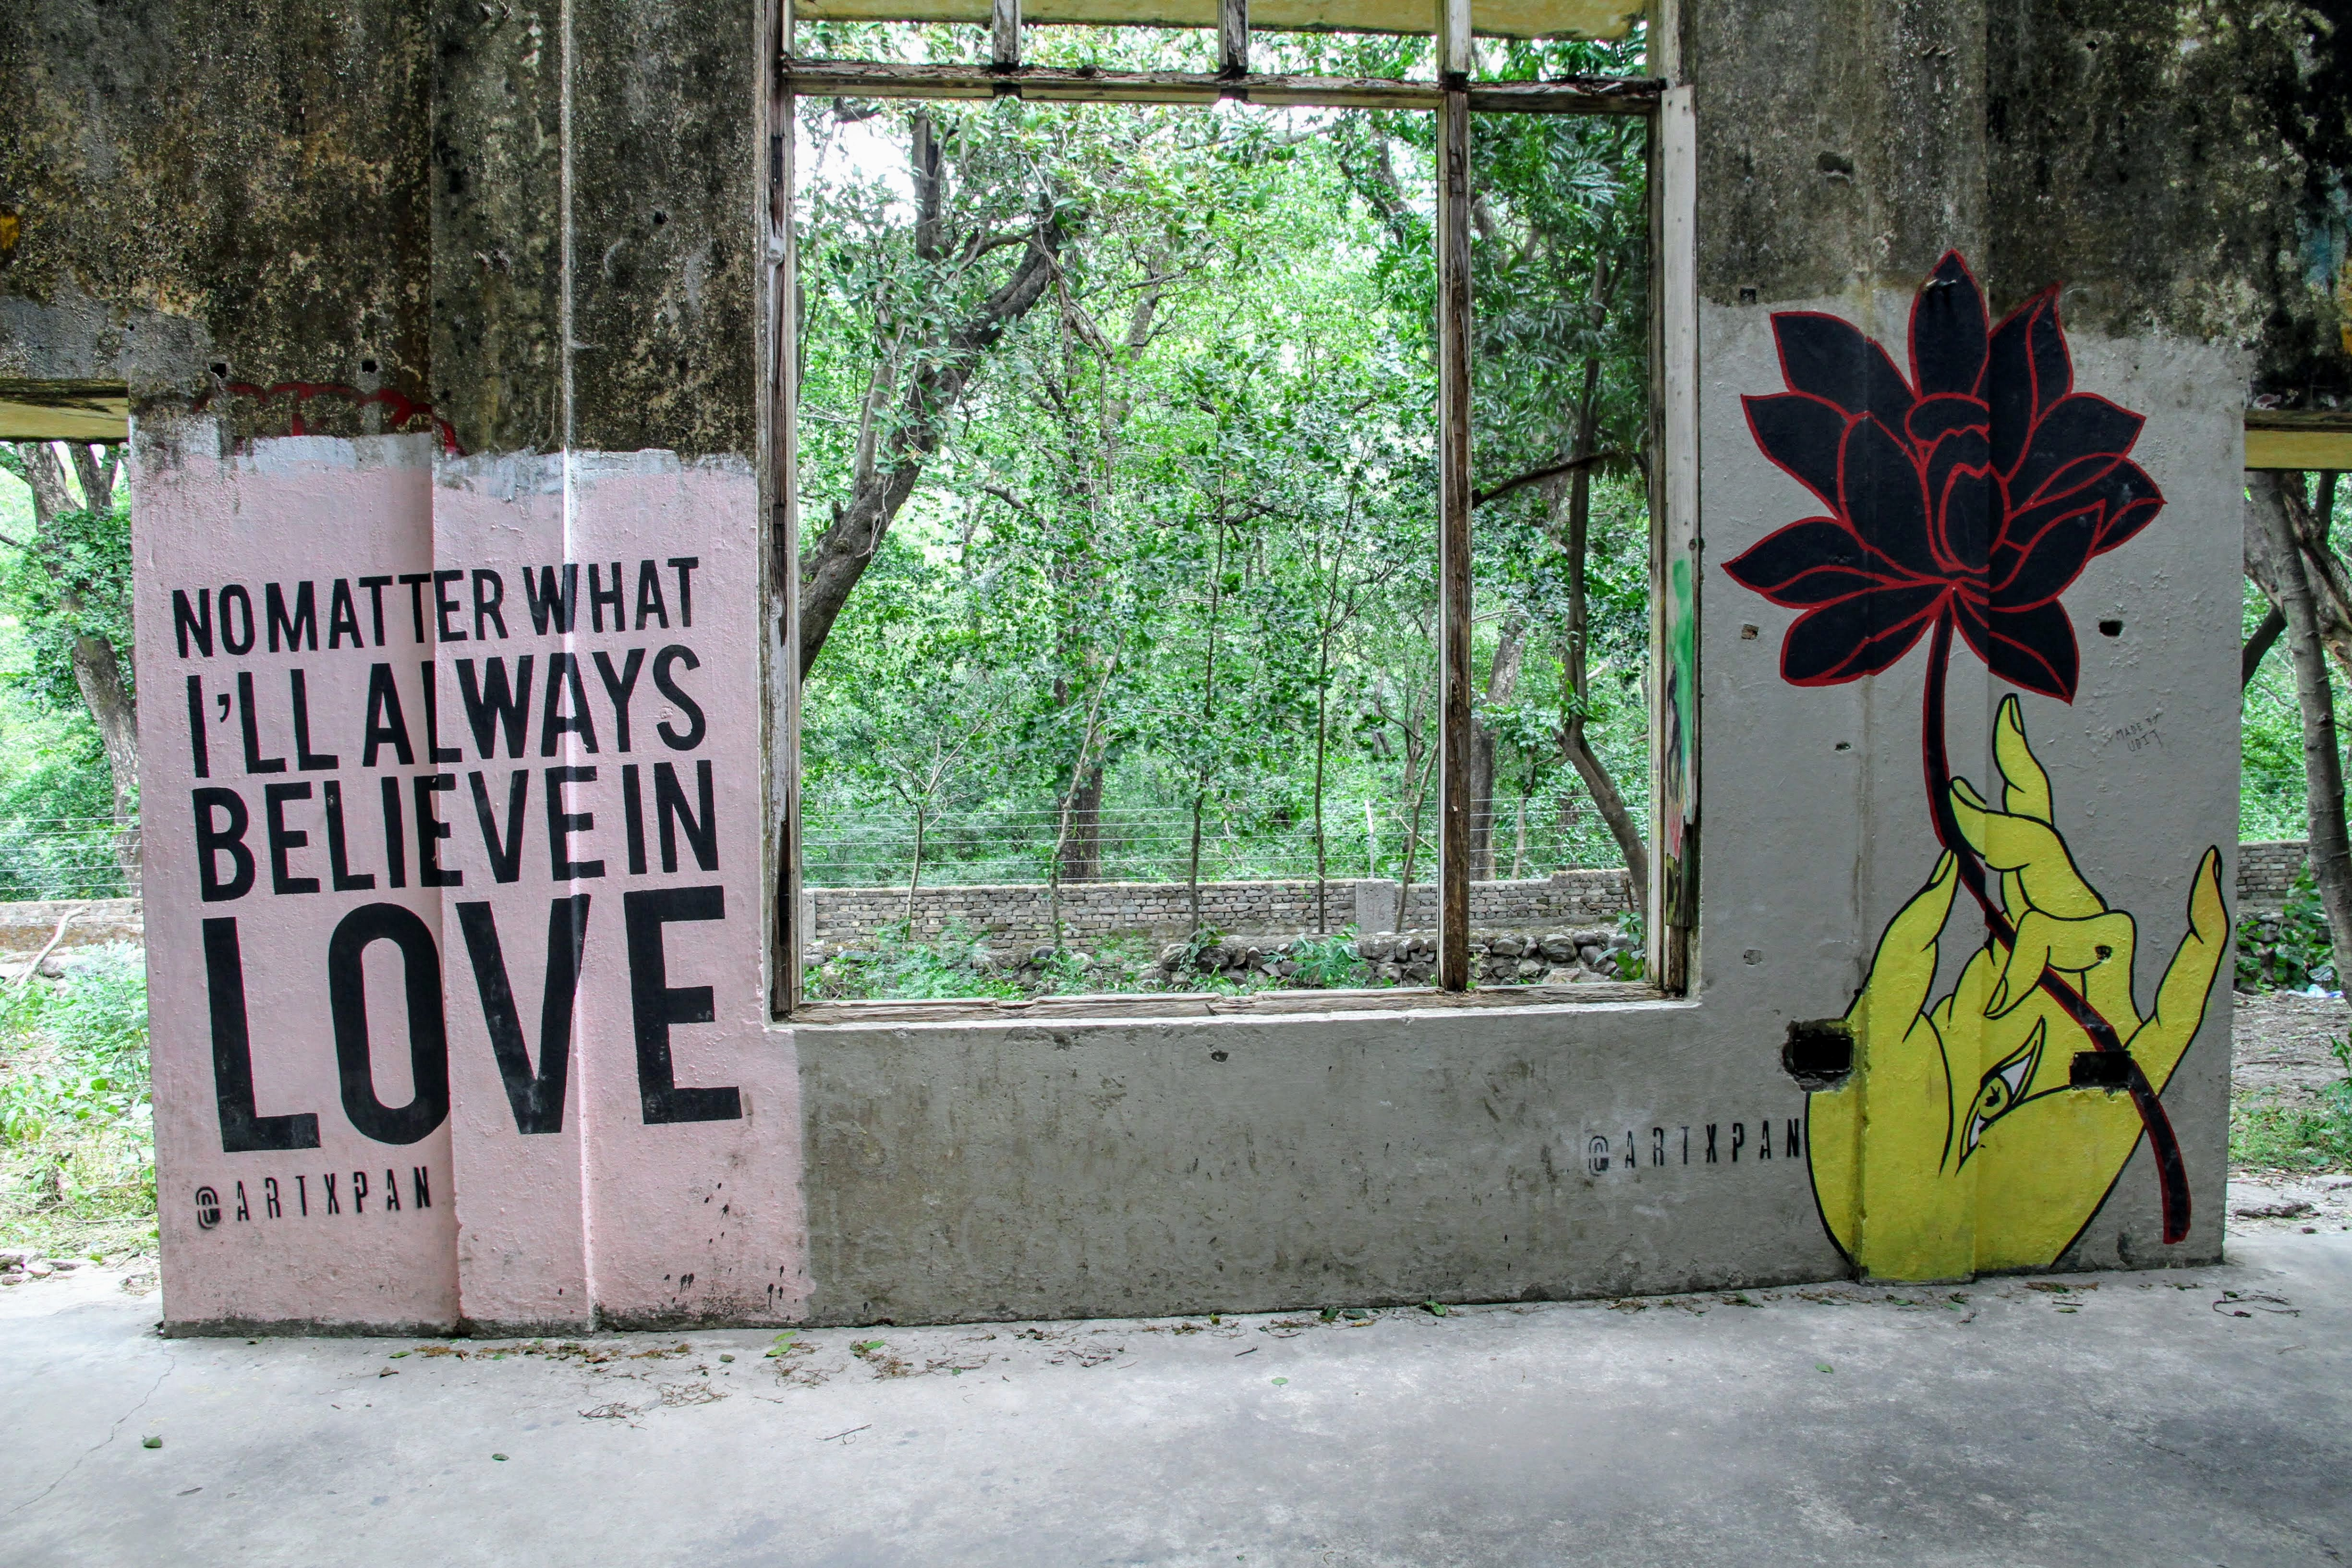 I'll Always Believe in Love graffiti, The Beatles Ashram, Rishikesh